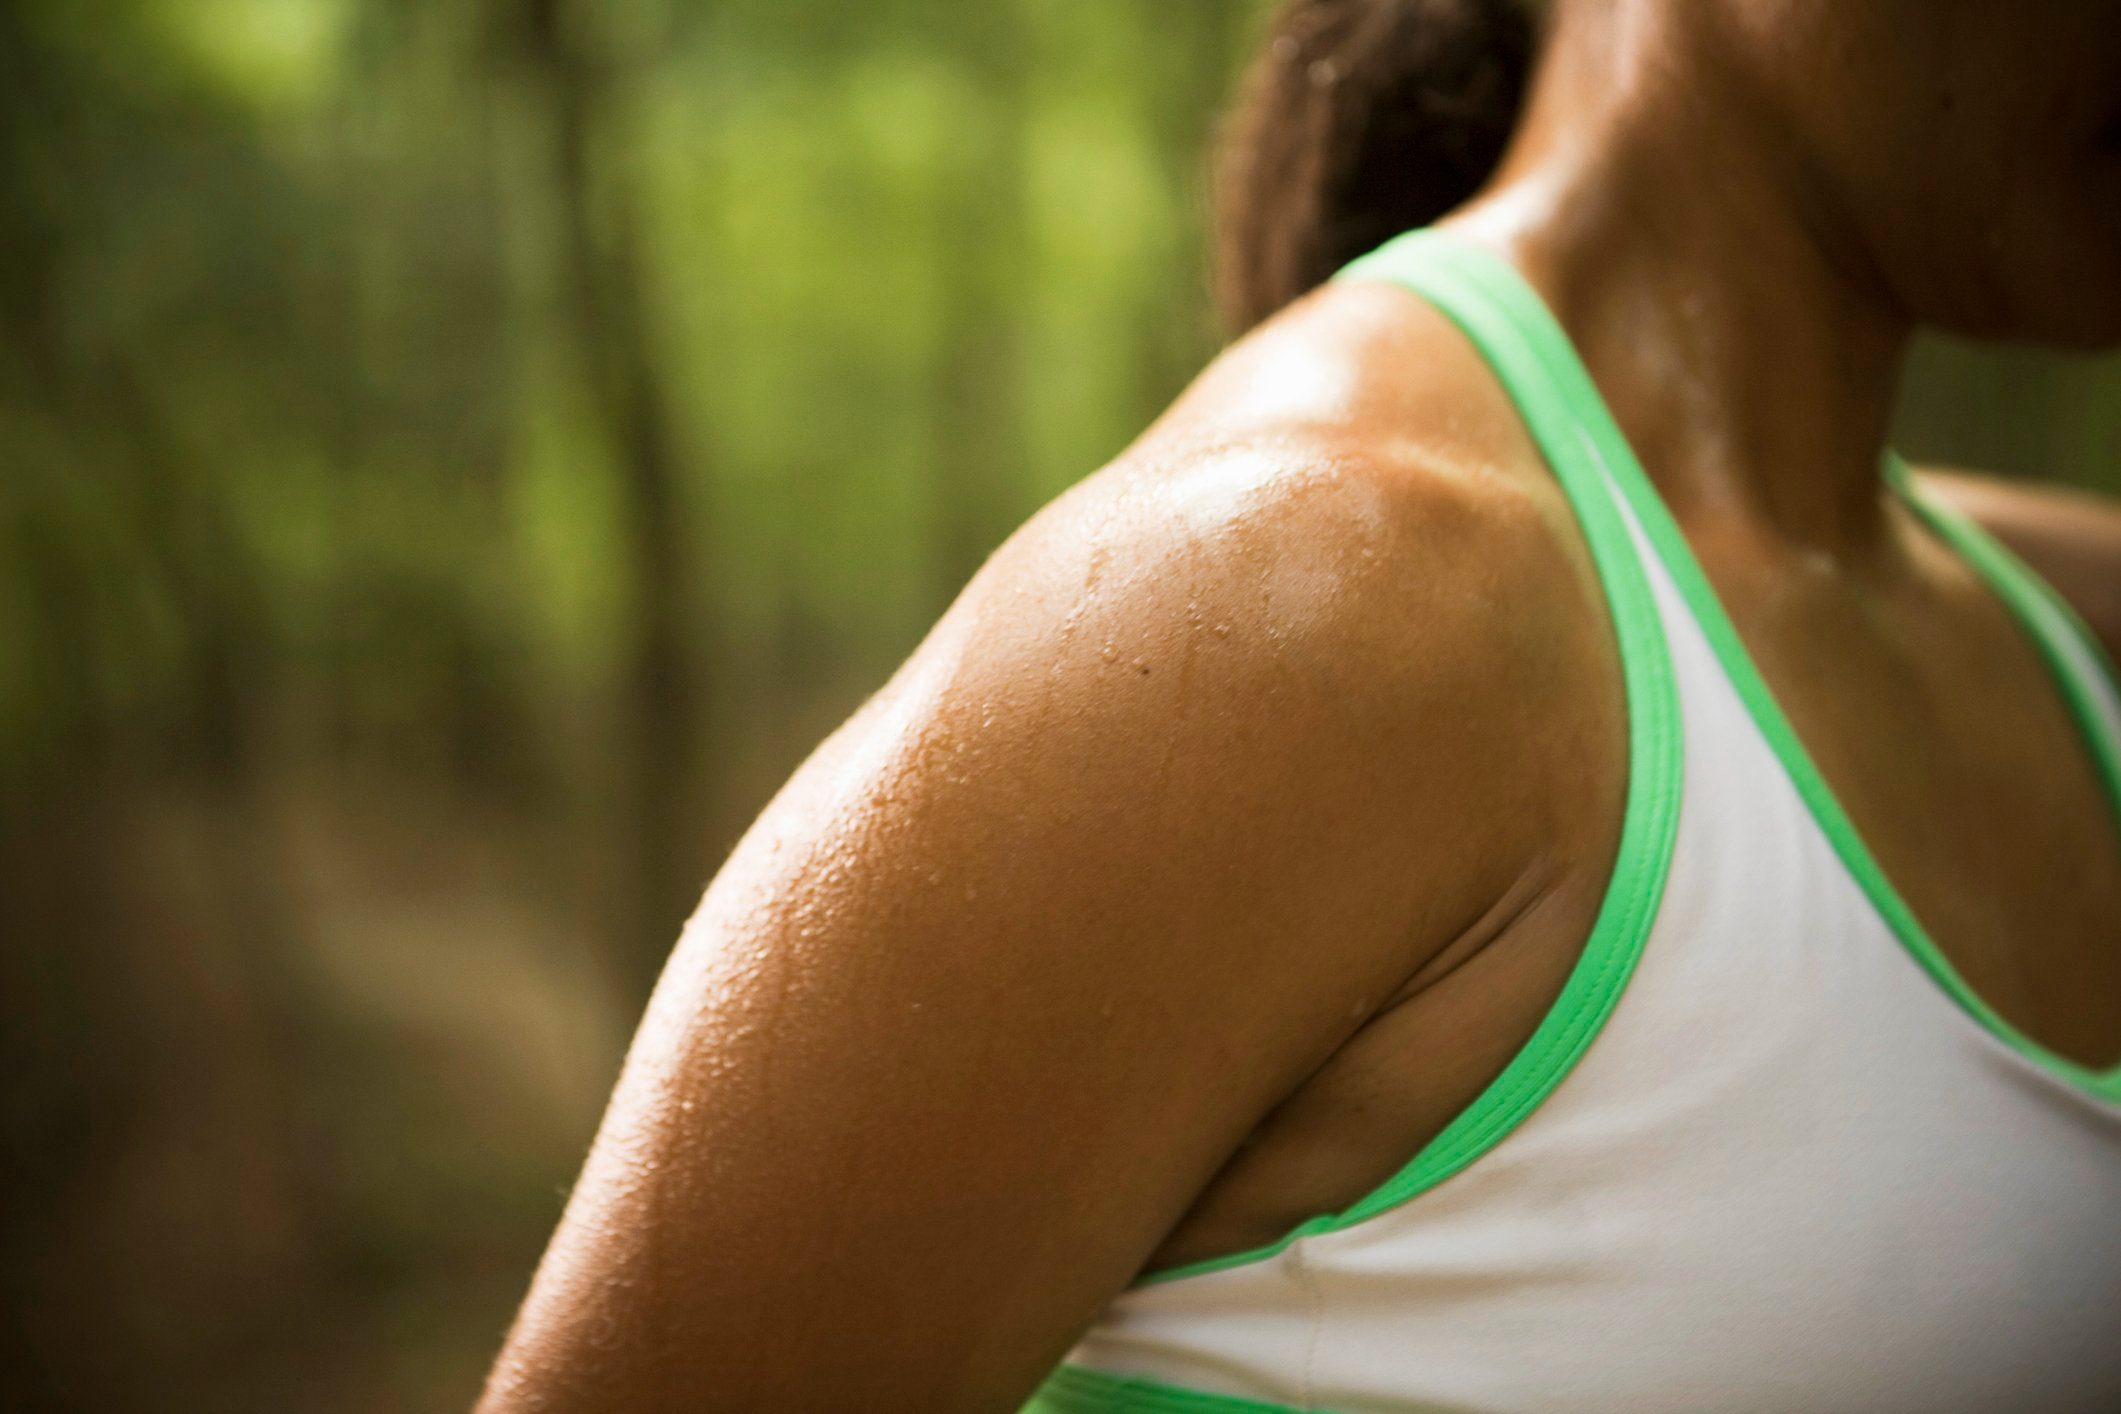 cause dehydration | close up of woman's sweaty shoulder outside during exercise